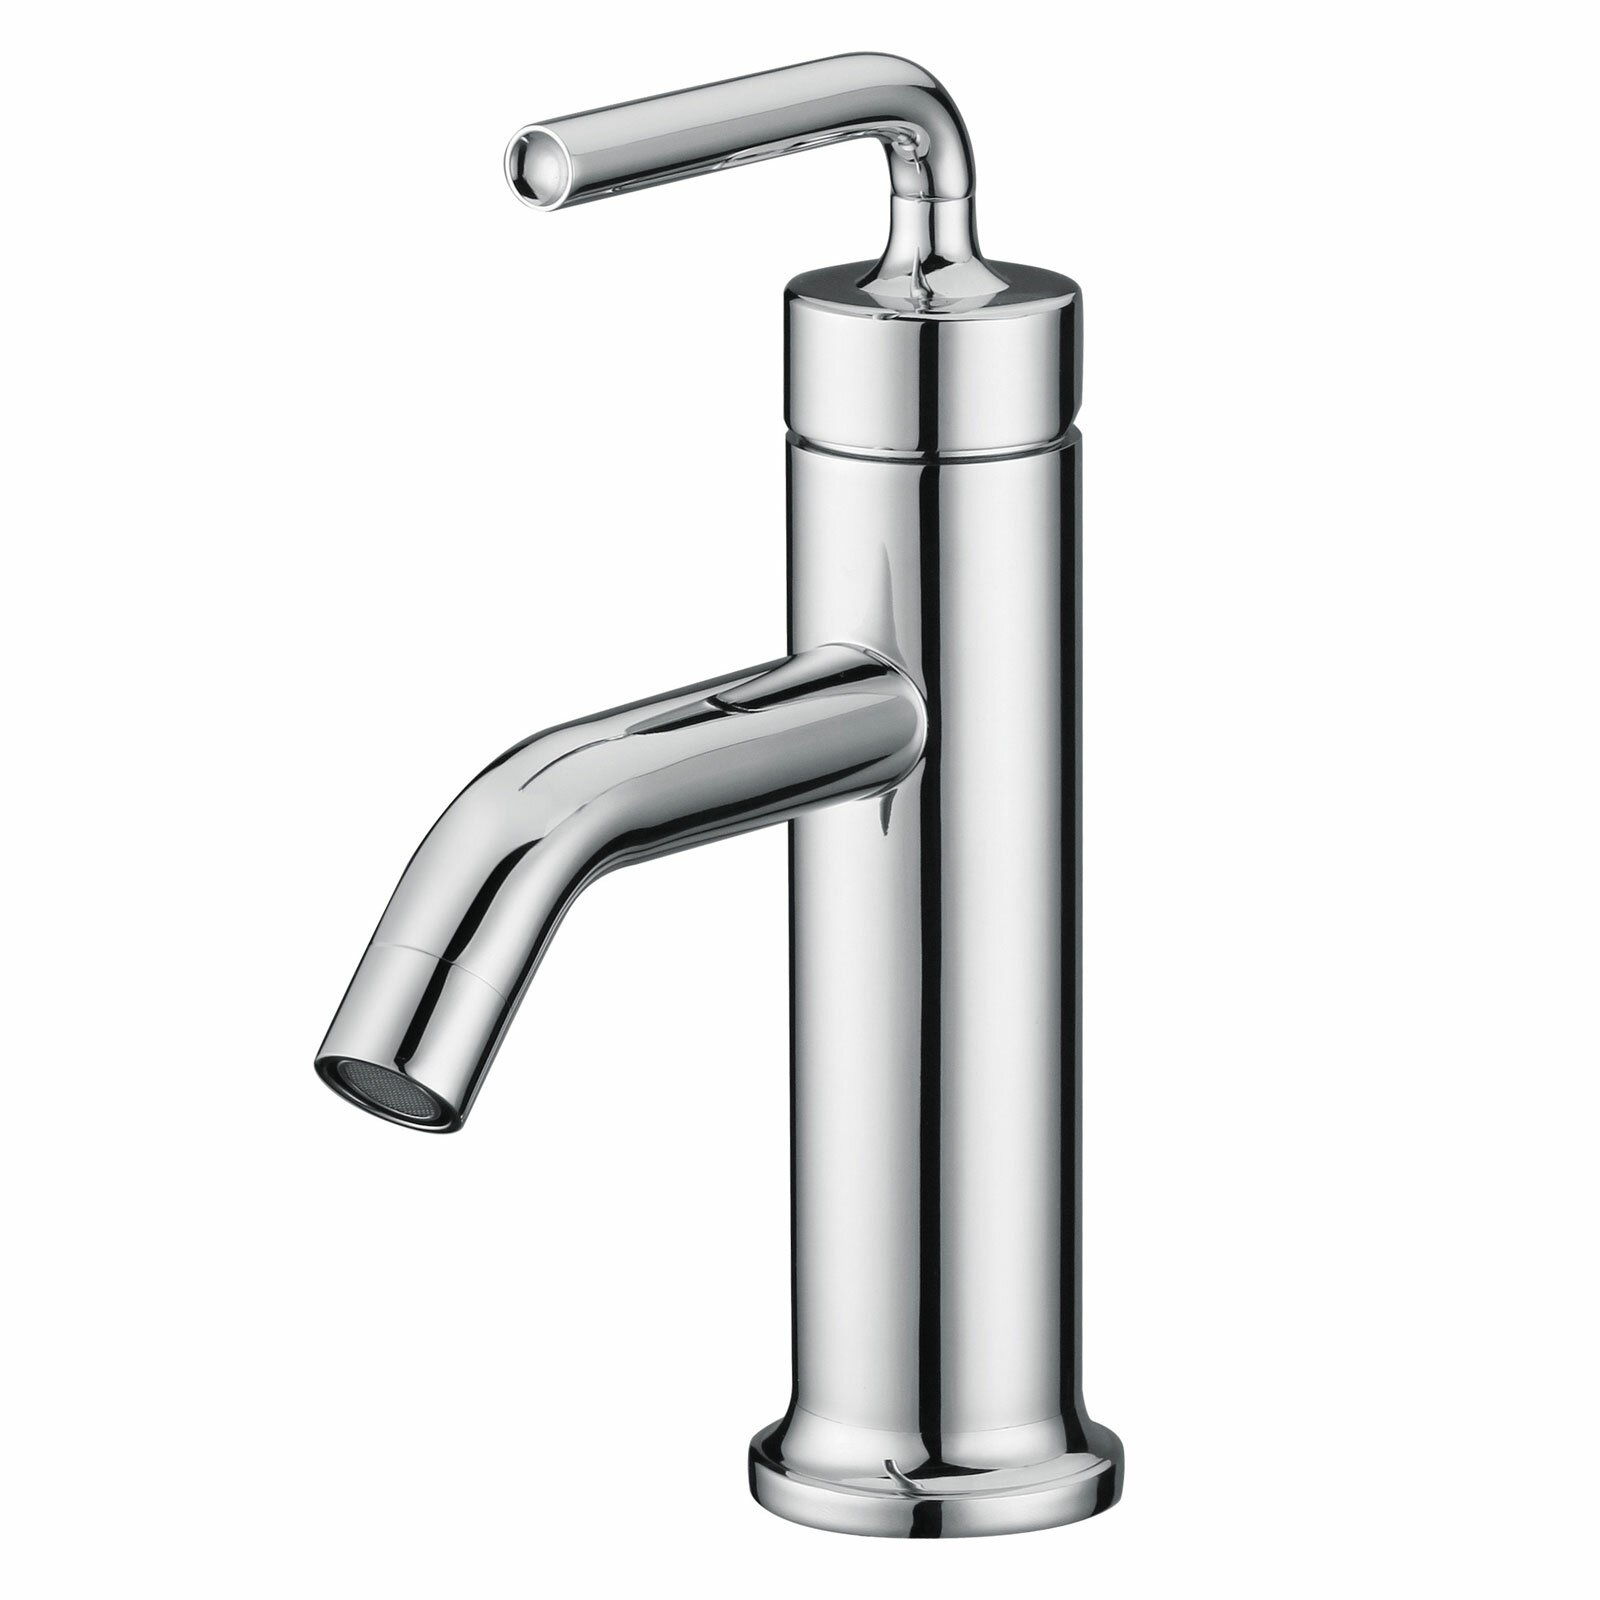 Bathtub Single Handle Faucet : Elite Single Handle Bathroom Faucet & Reviews Wayfair